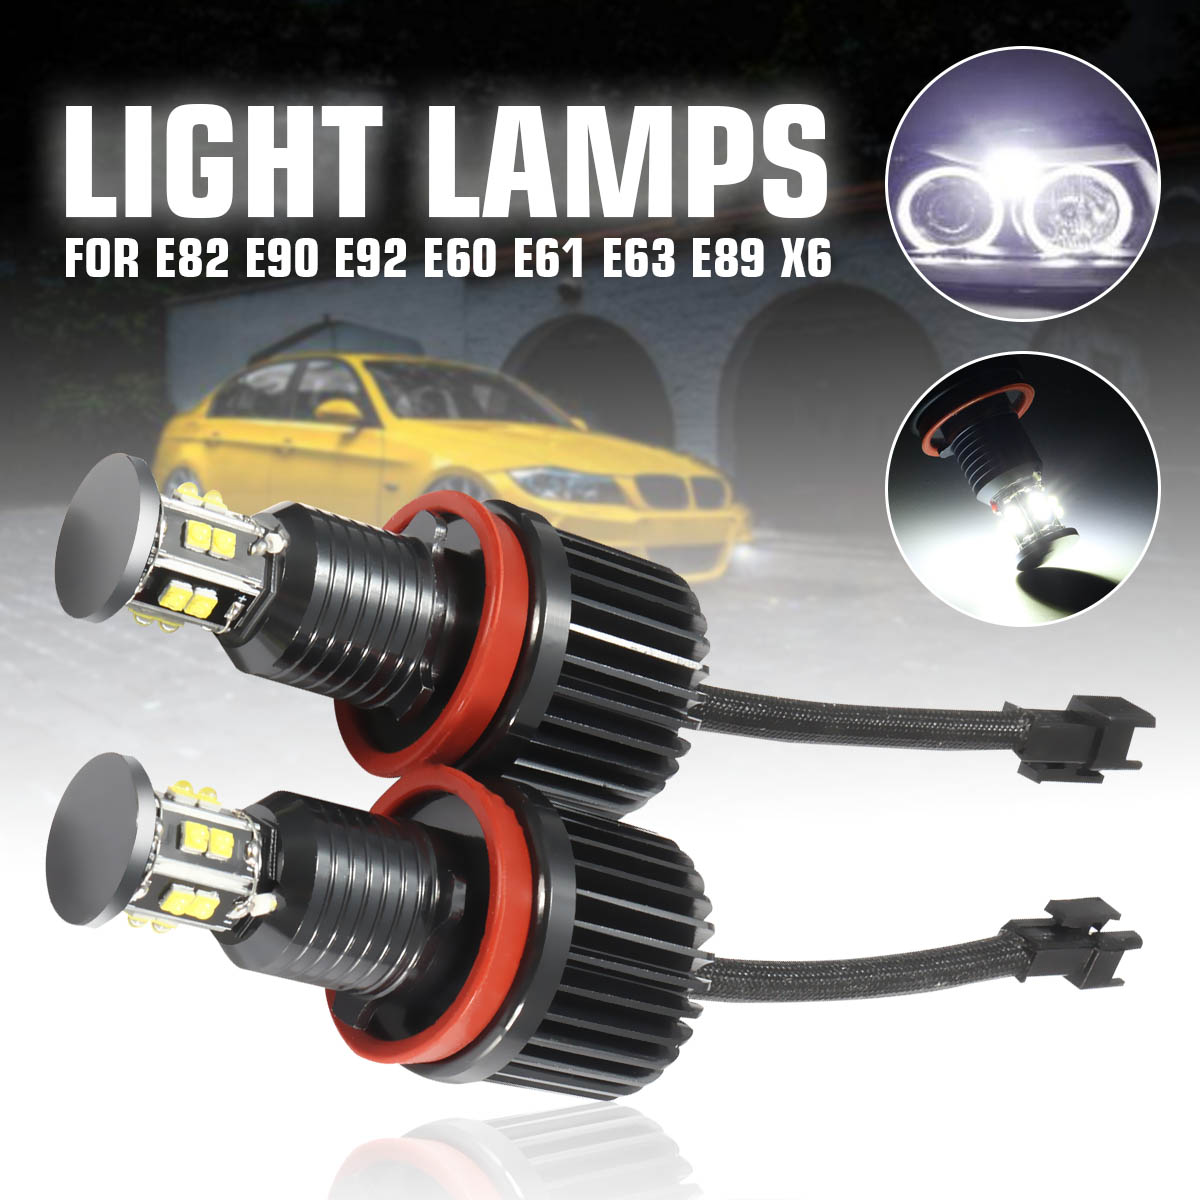 2X 120W H8 LED Angel Eyes Led Marker Lights Headlight For BMW X5 E70  X6 E82 E87 E88 E90 E91 E92 E93 E60 E61 E63 E64 E84 X1 E80